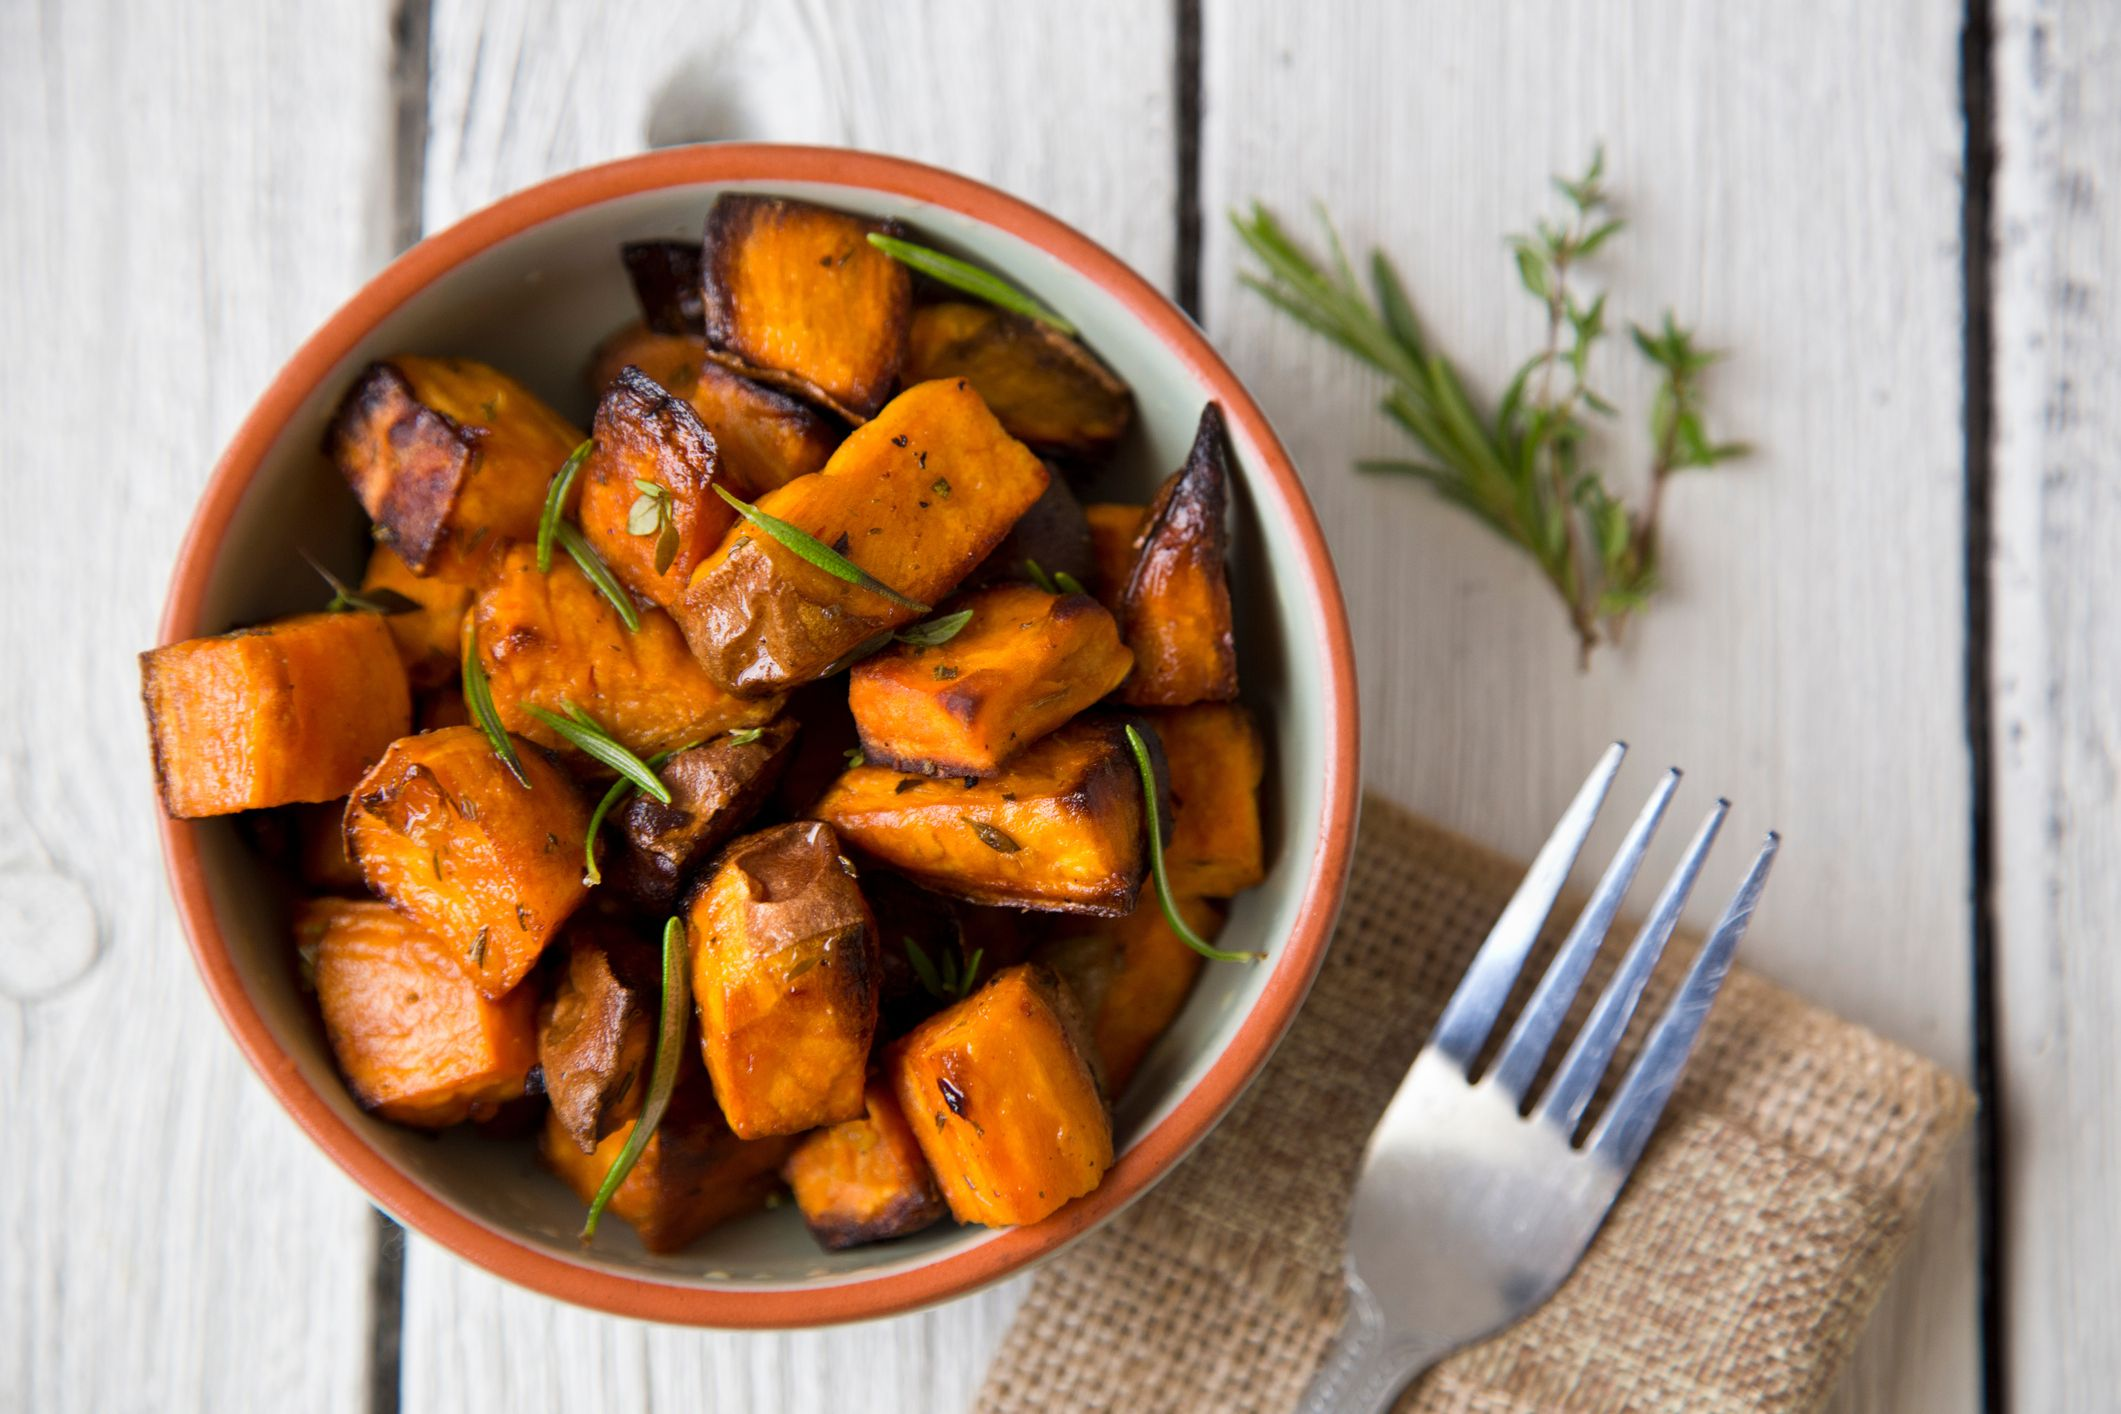 Directly Above Shot Of Roasted Sweet Potatoes Served In Bowl